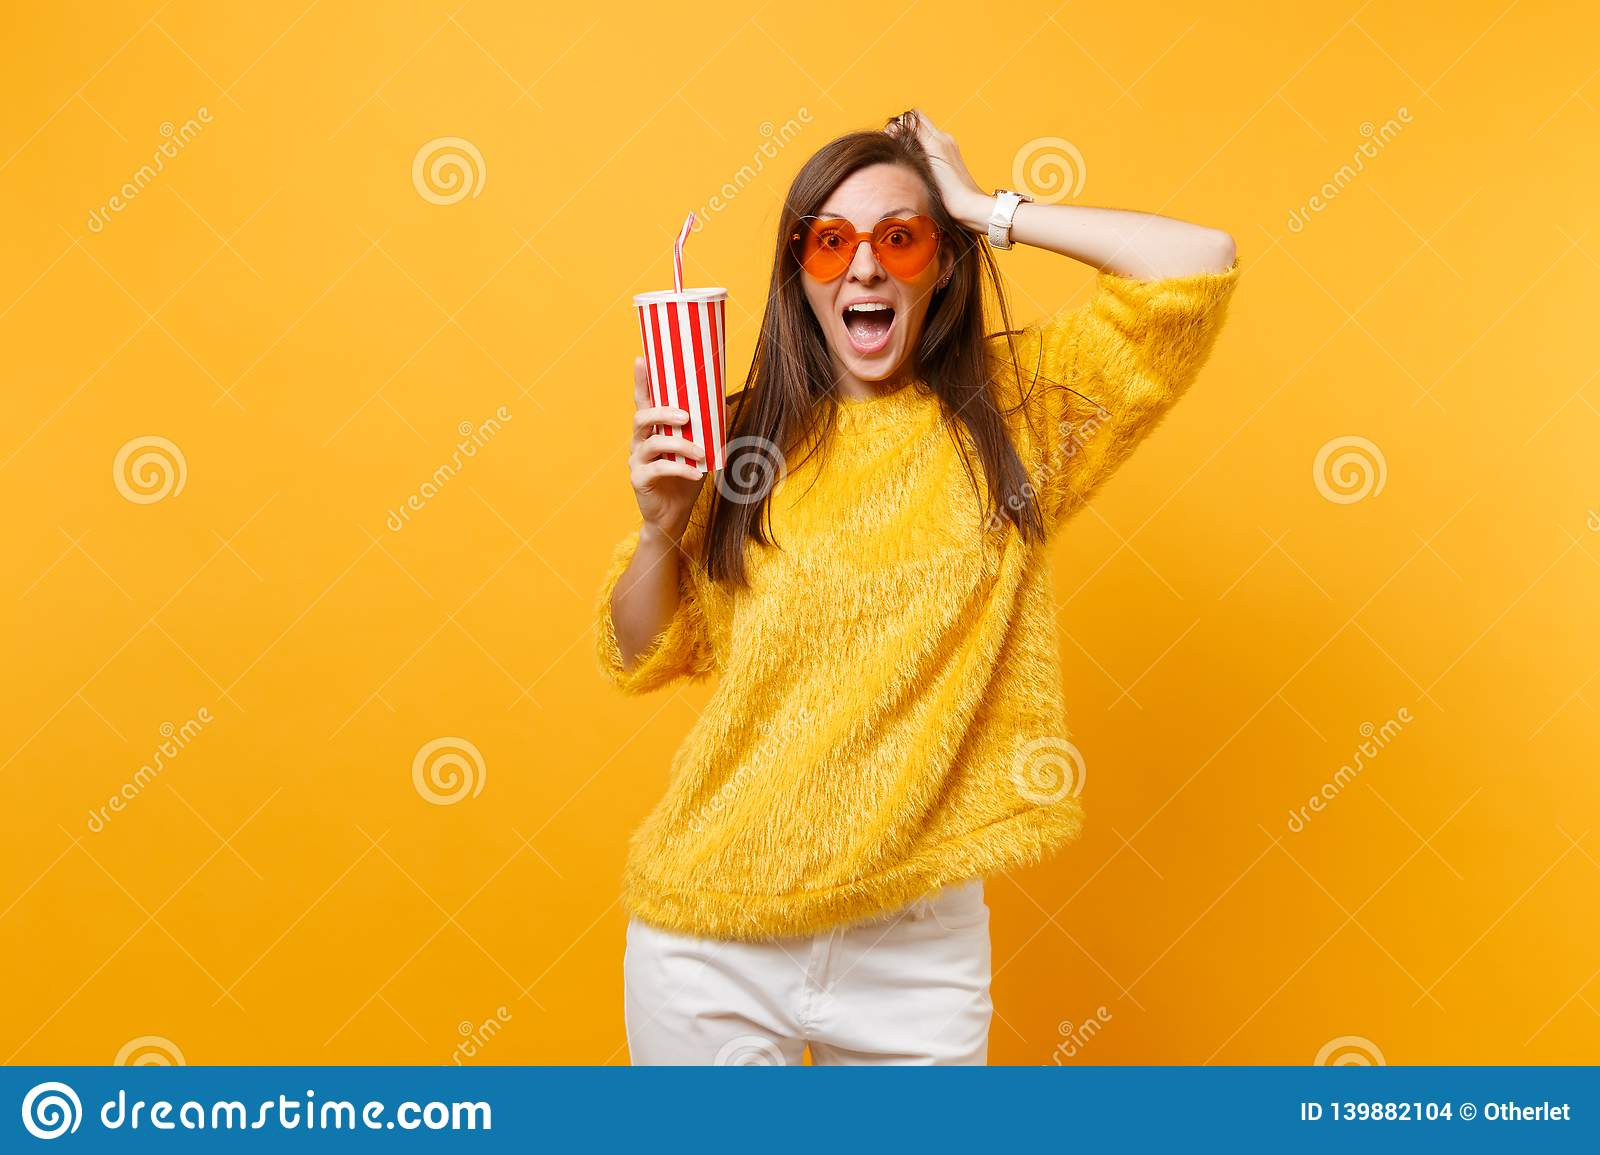 Excited young woman in sweater, heart orange glasses clinging to head holding plastic cup with cola or soda isolated on